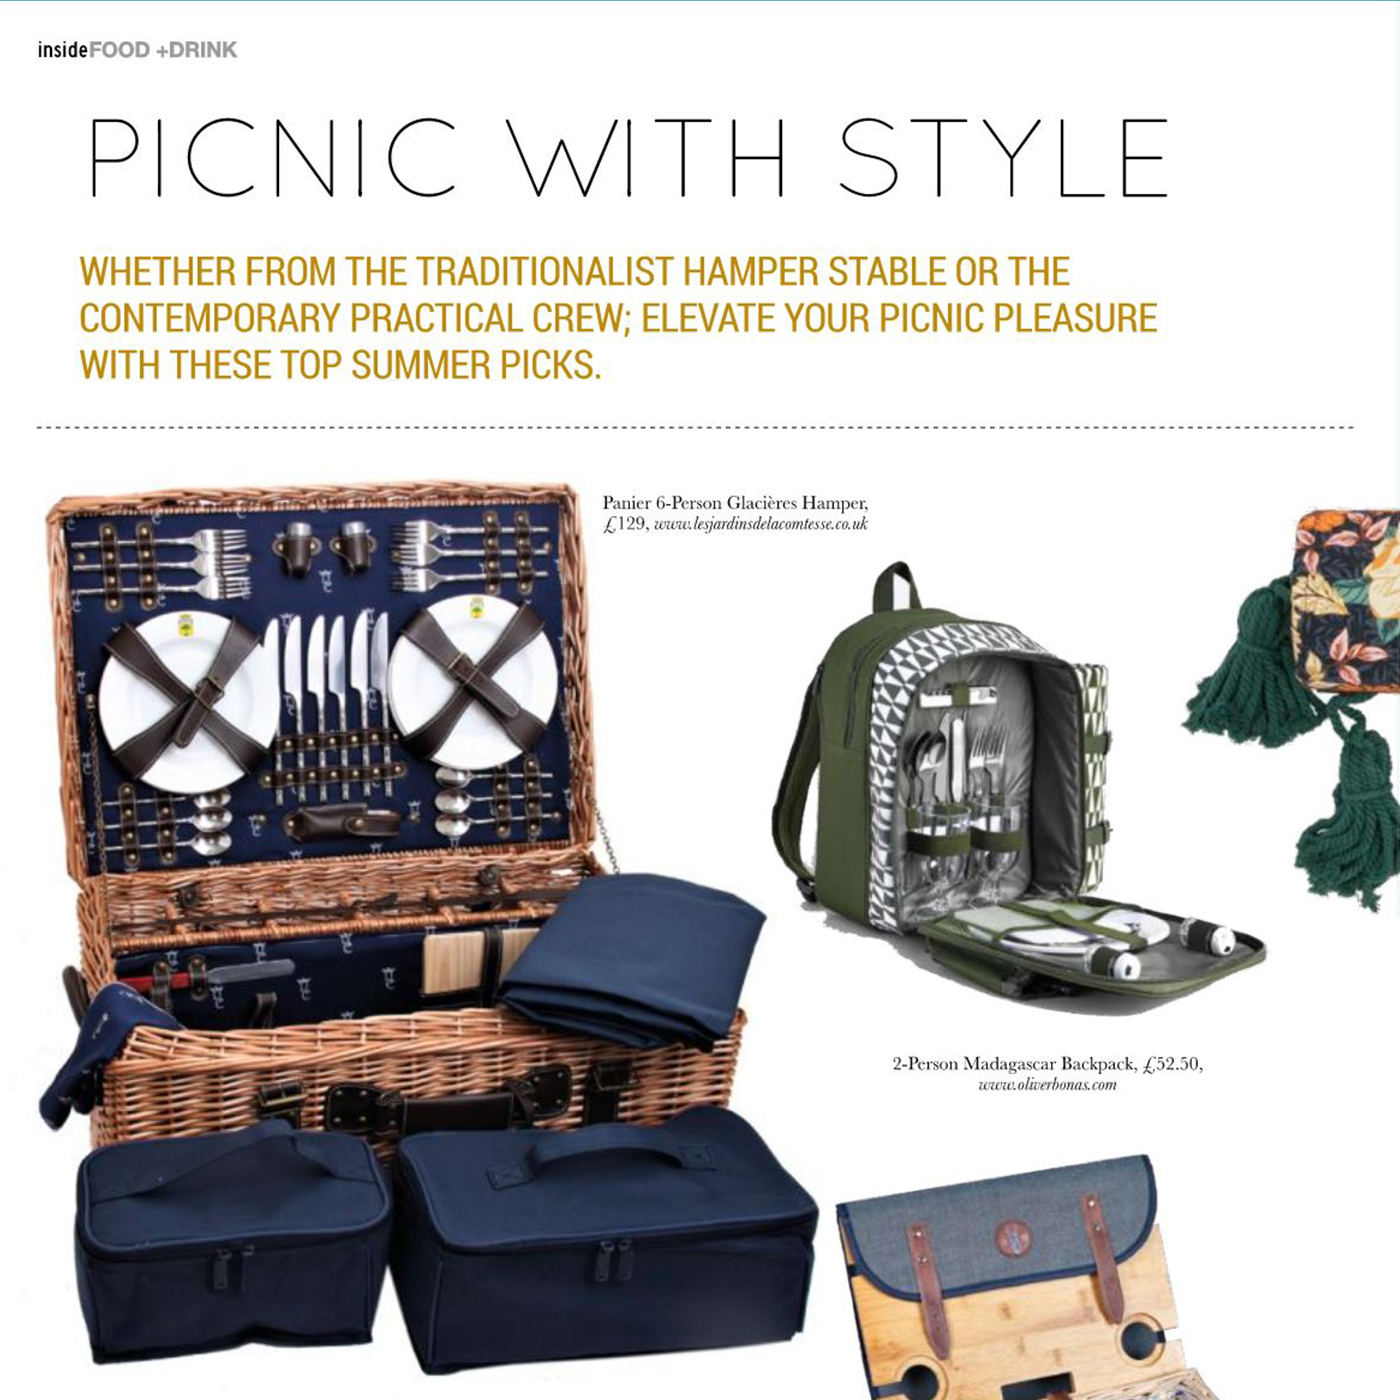 Our new picnic basket Concorde in an article of the people friend's - april 2020